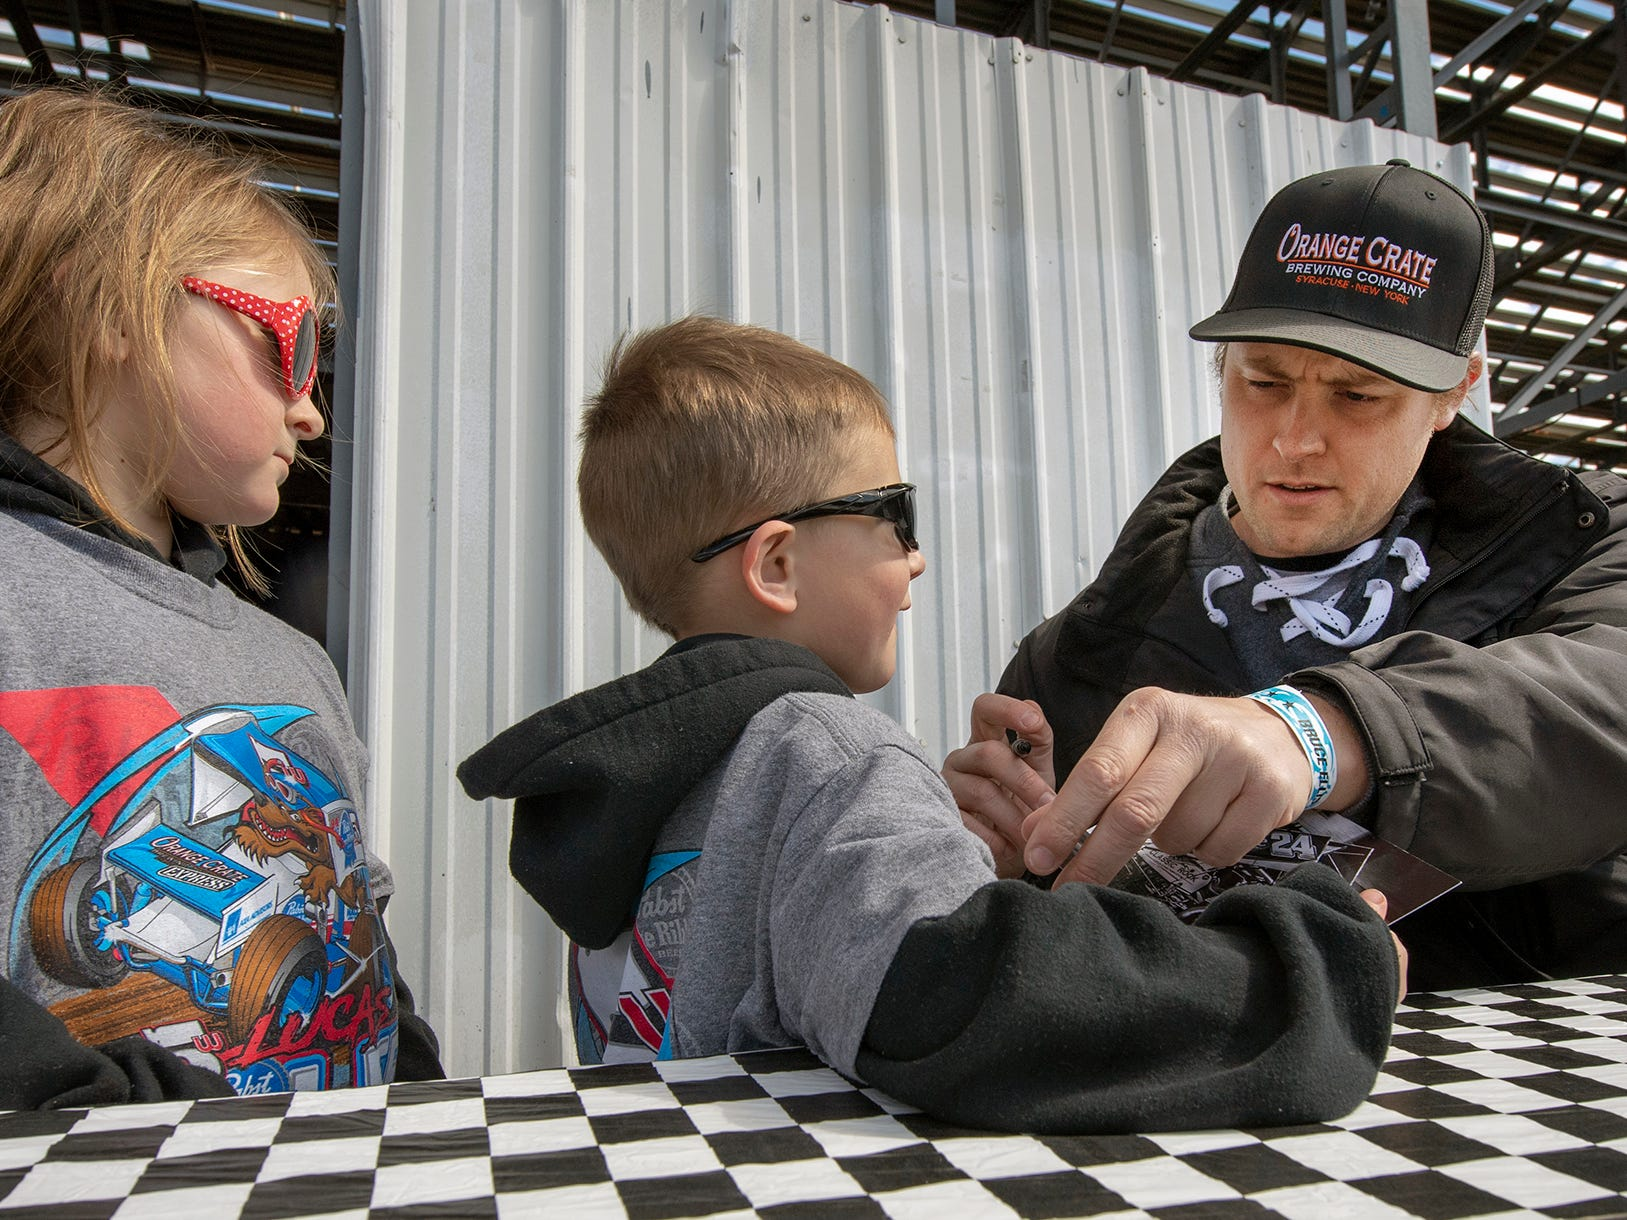 From the right, Lucas Wolfe signs shirts for Tripp, age 4, and Piper Hartz of Wapwallopen before the Williams Grove season opener for 410 sprints Sunday March 17, 2019. Wolfe went on to win the feature event.